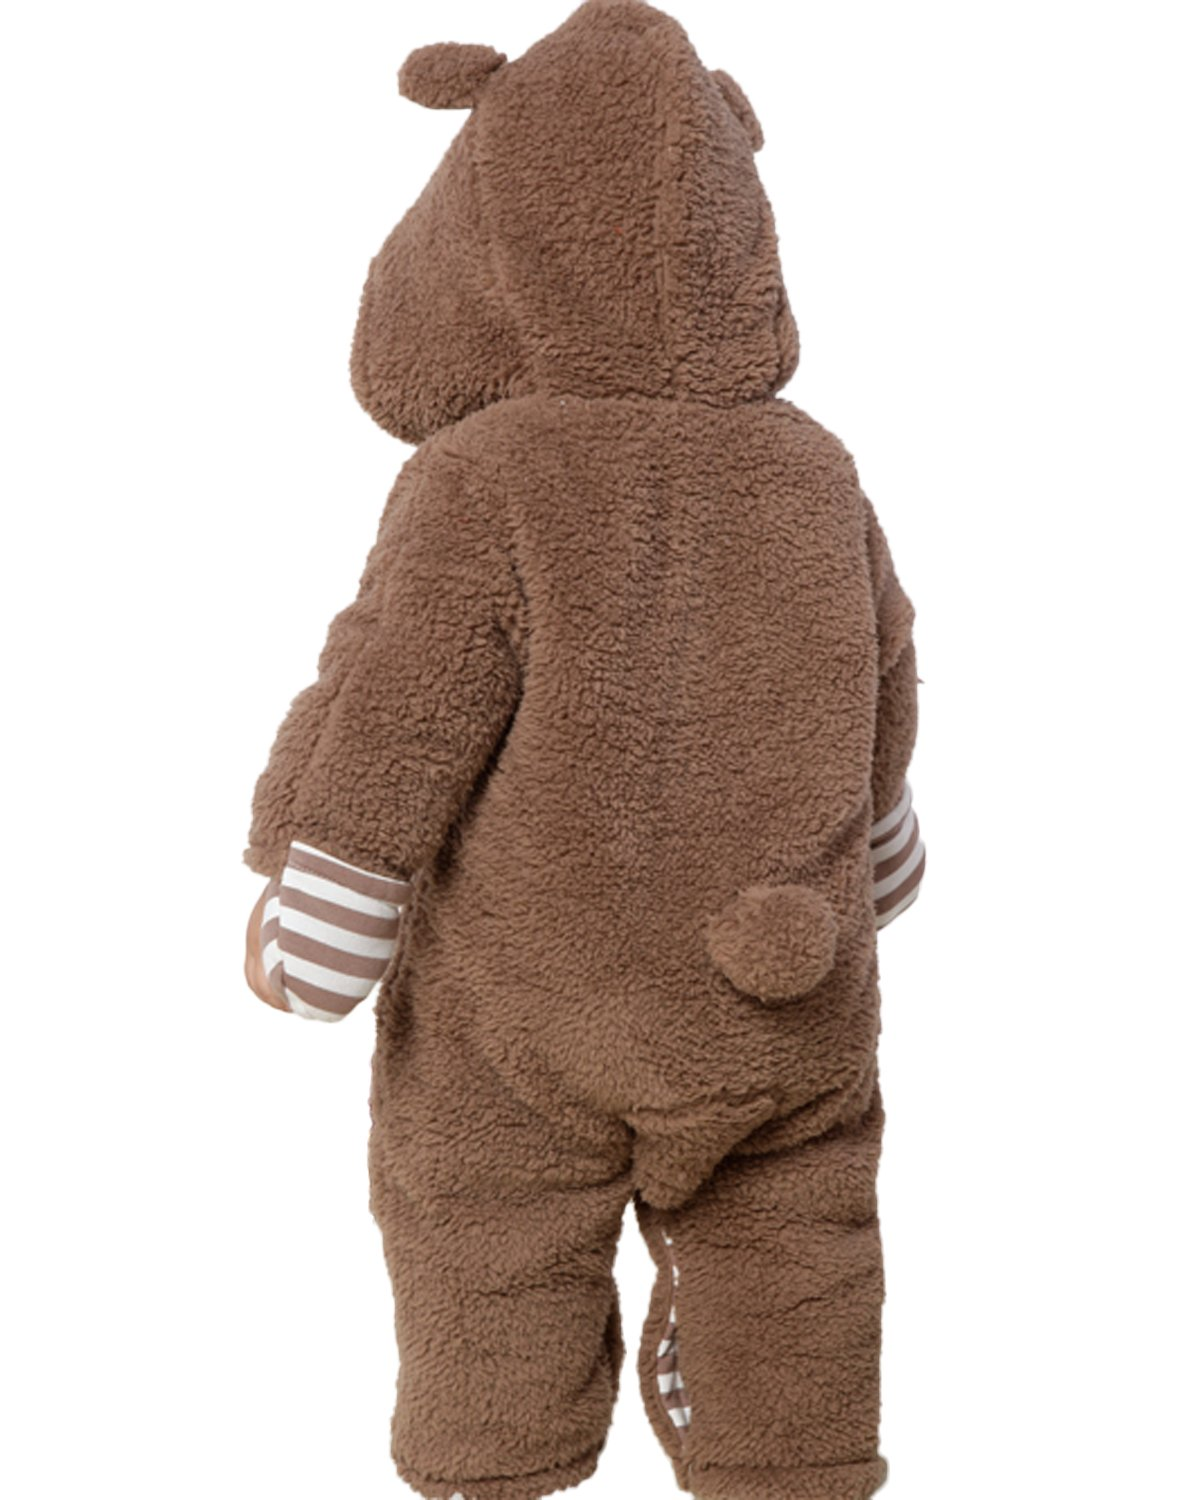 Kidsform Infant Winter Snowsuit Baby Bear Hoodie Romper Outfit Fleece Bunting Pram Suit Outerwear Coat Coveralls 0-24M Brown 3-6M by Kidsform (Image #3)